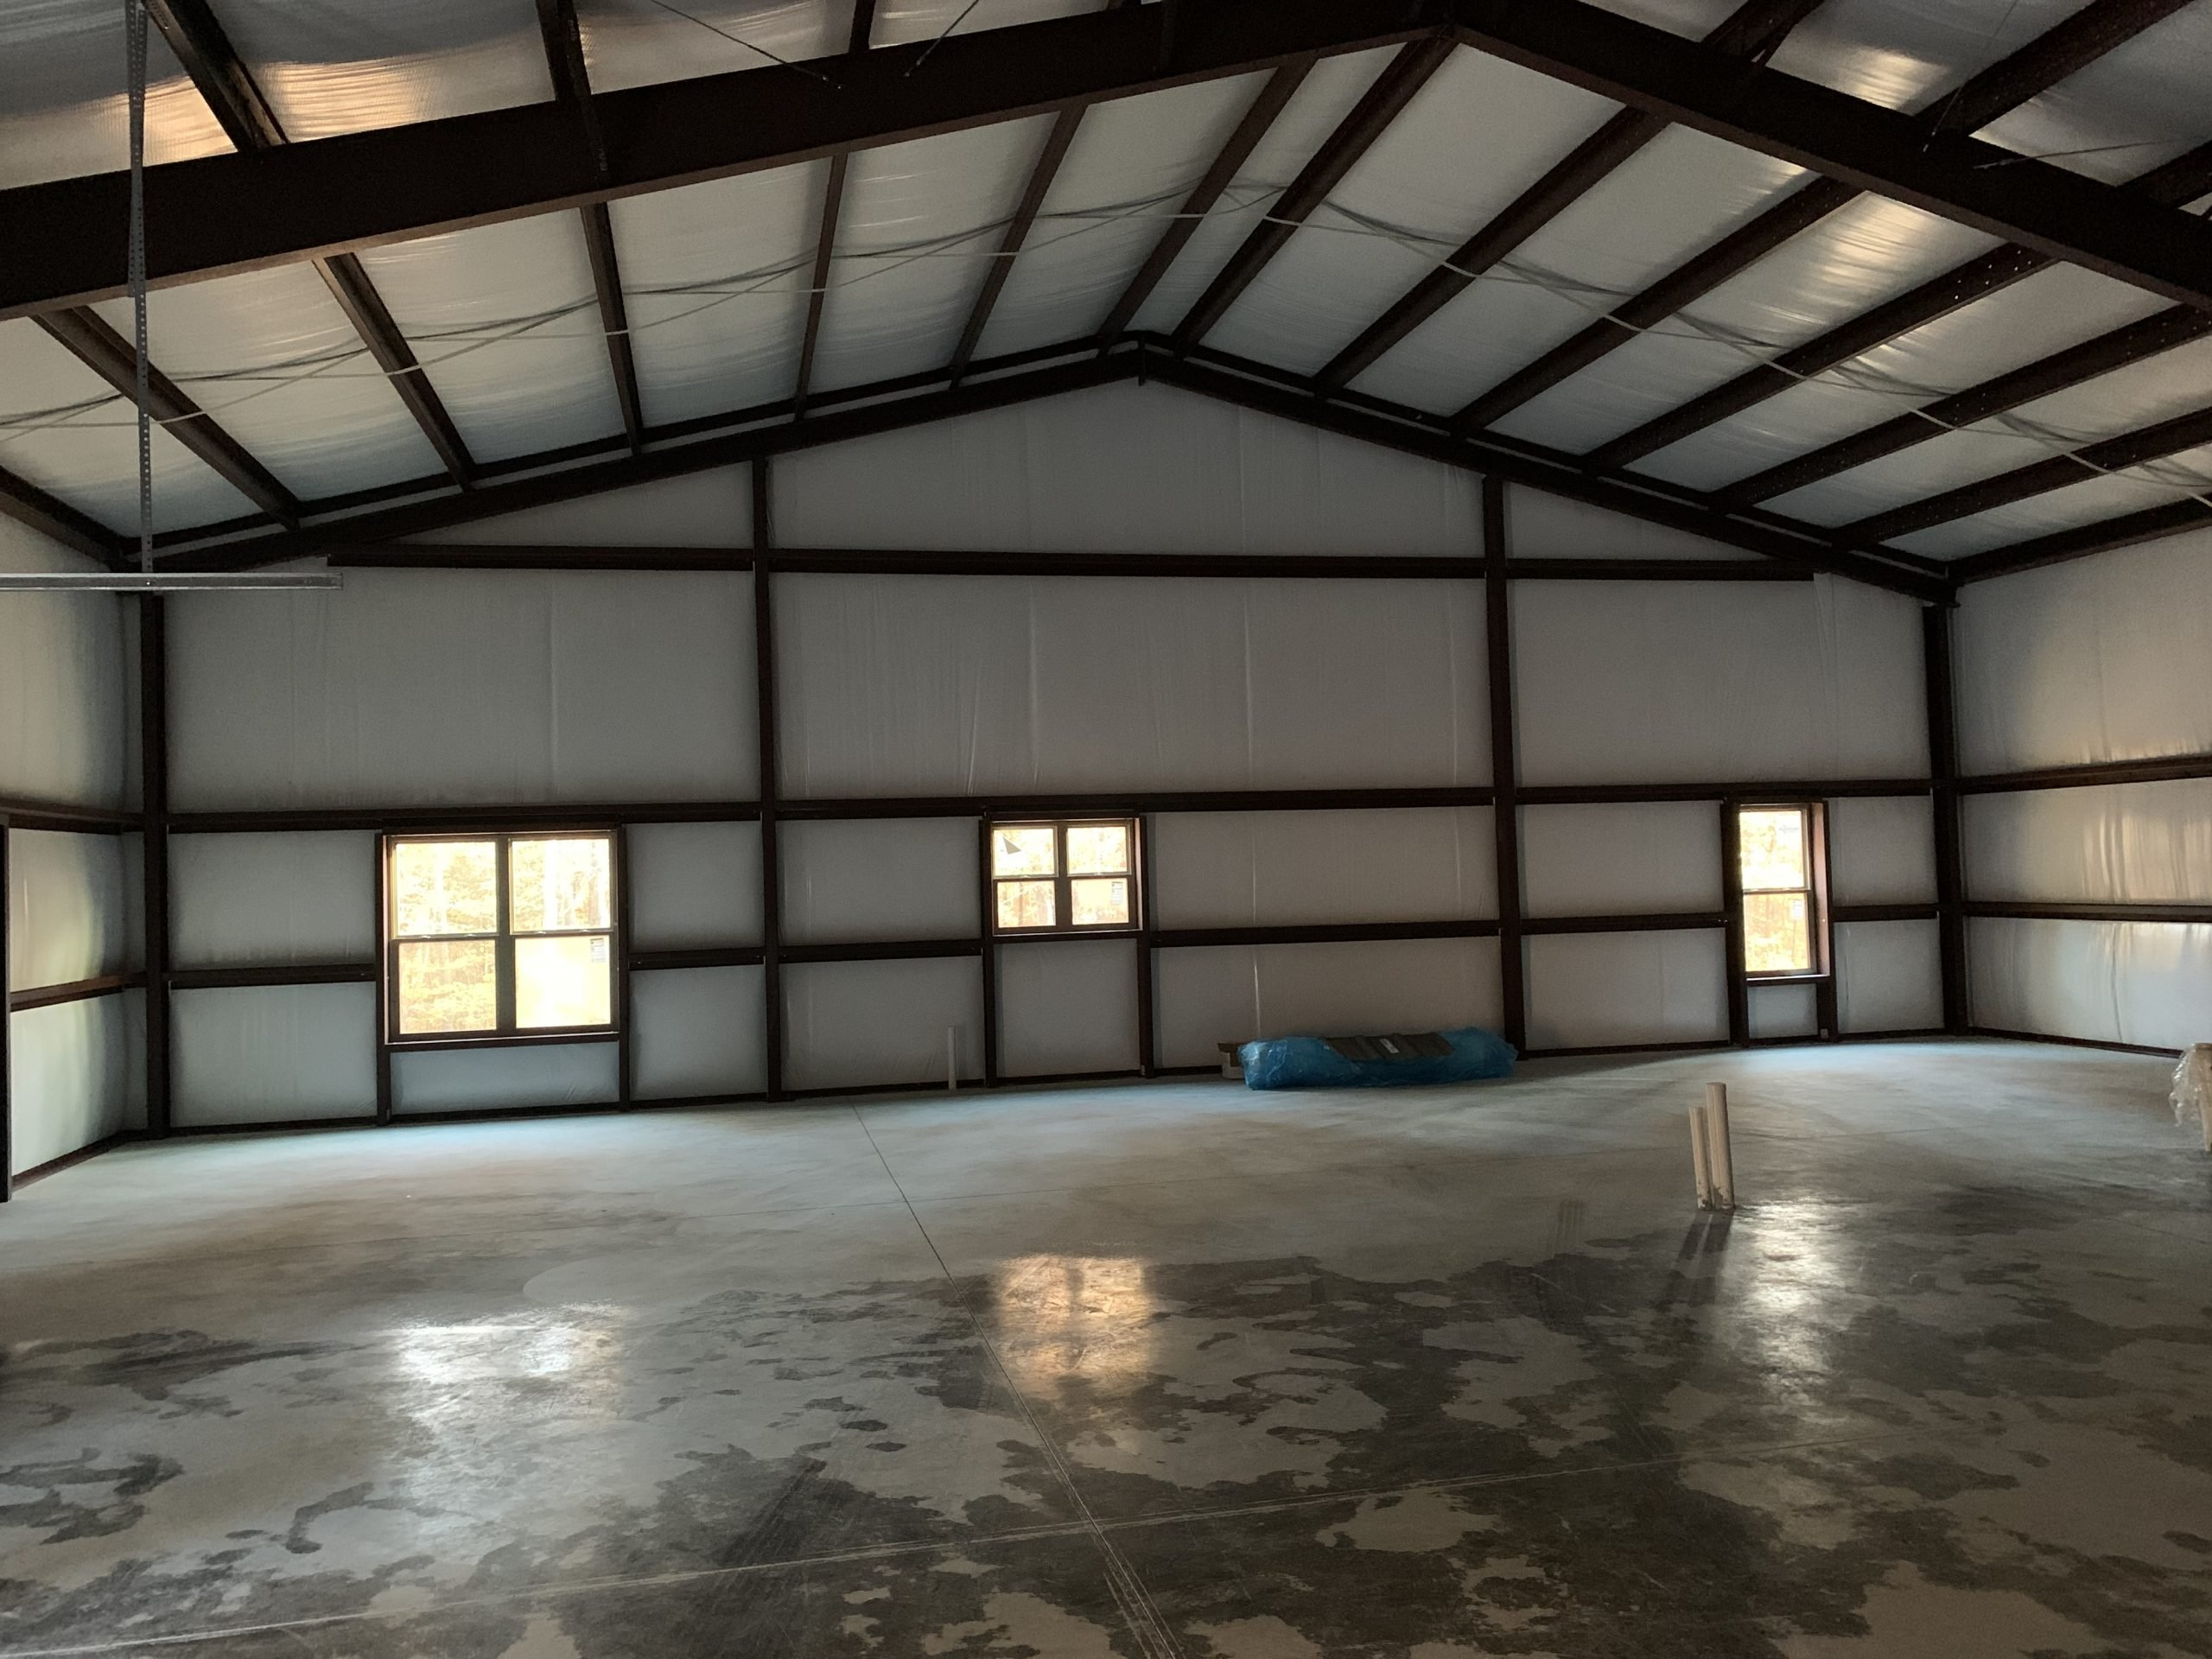 Interior View Of Pre-Engineered Metal Building With High Clearance Steel Beams And Custom Windows